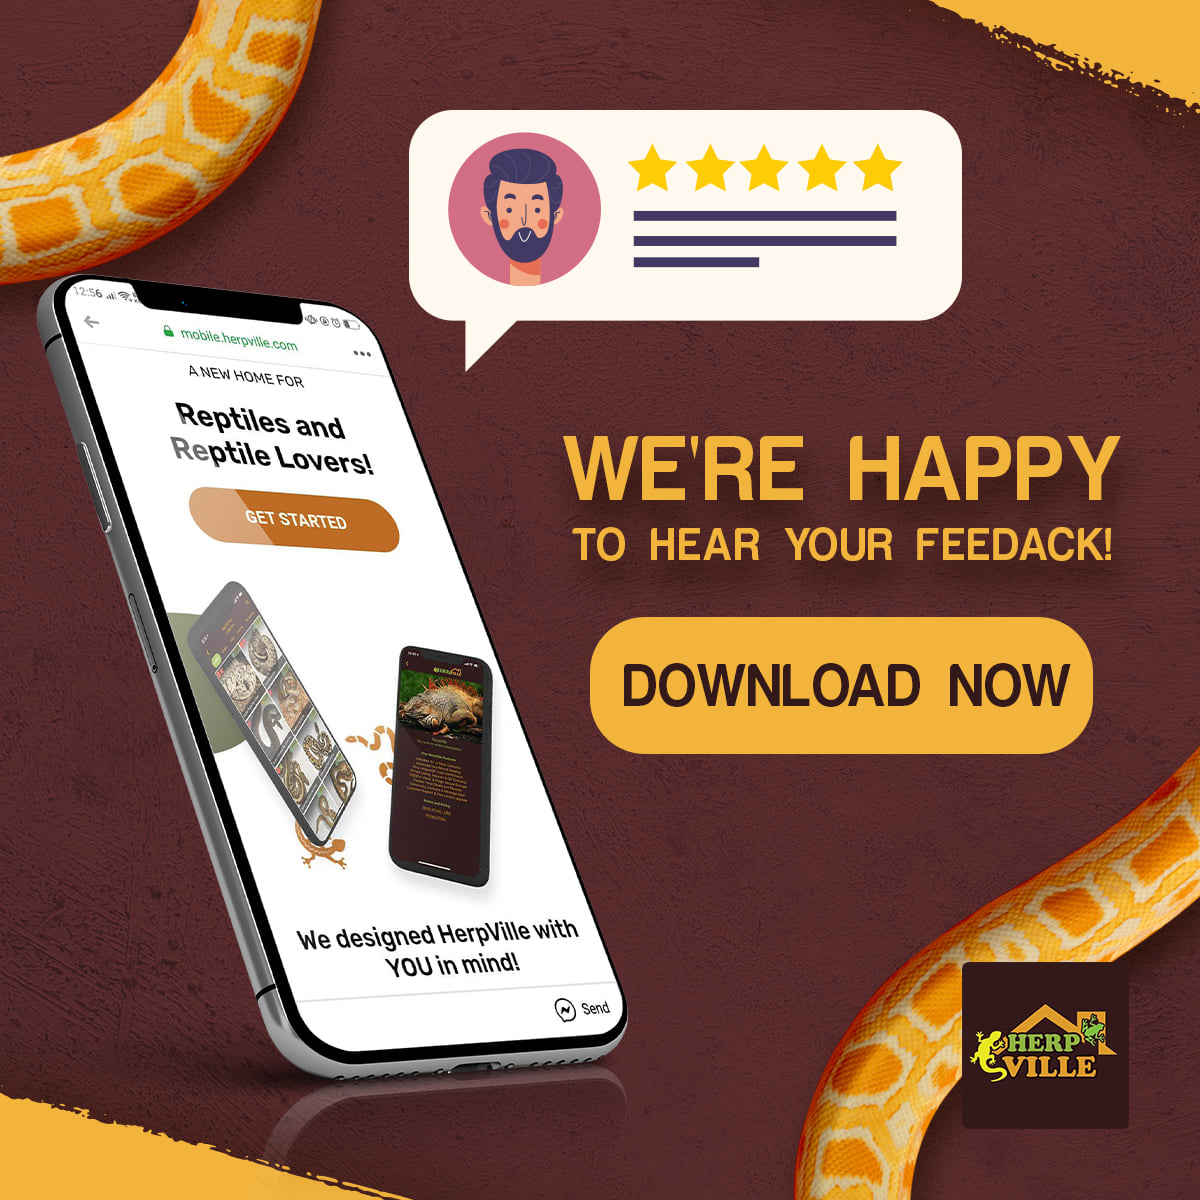 We're happy to hear your feedback